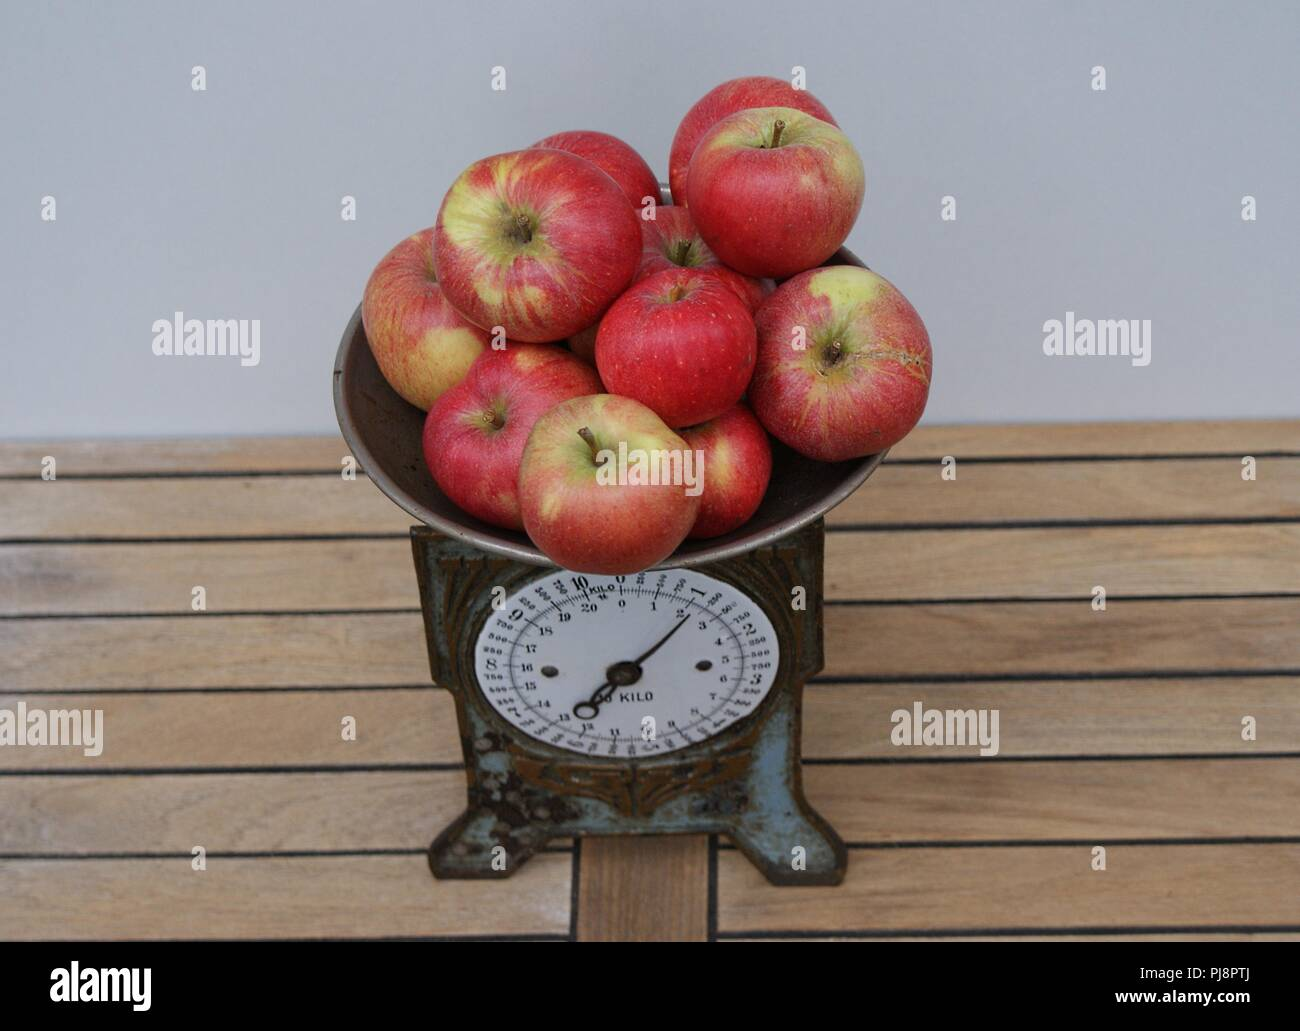 Red apples on an old-time kitchen scale seen from above - Stock Image